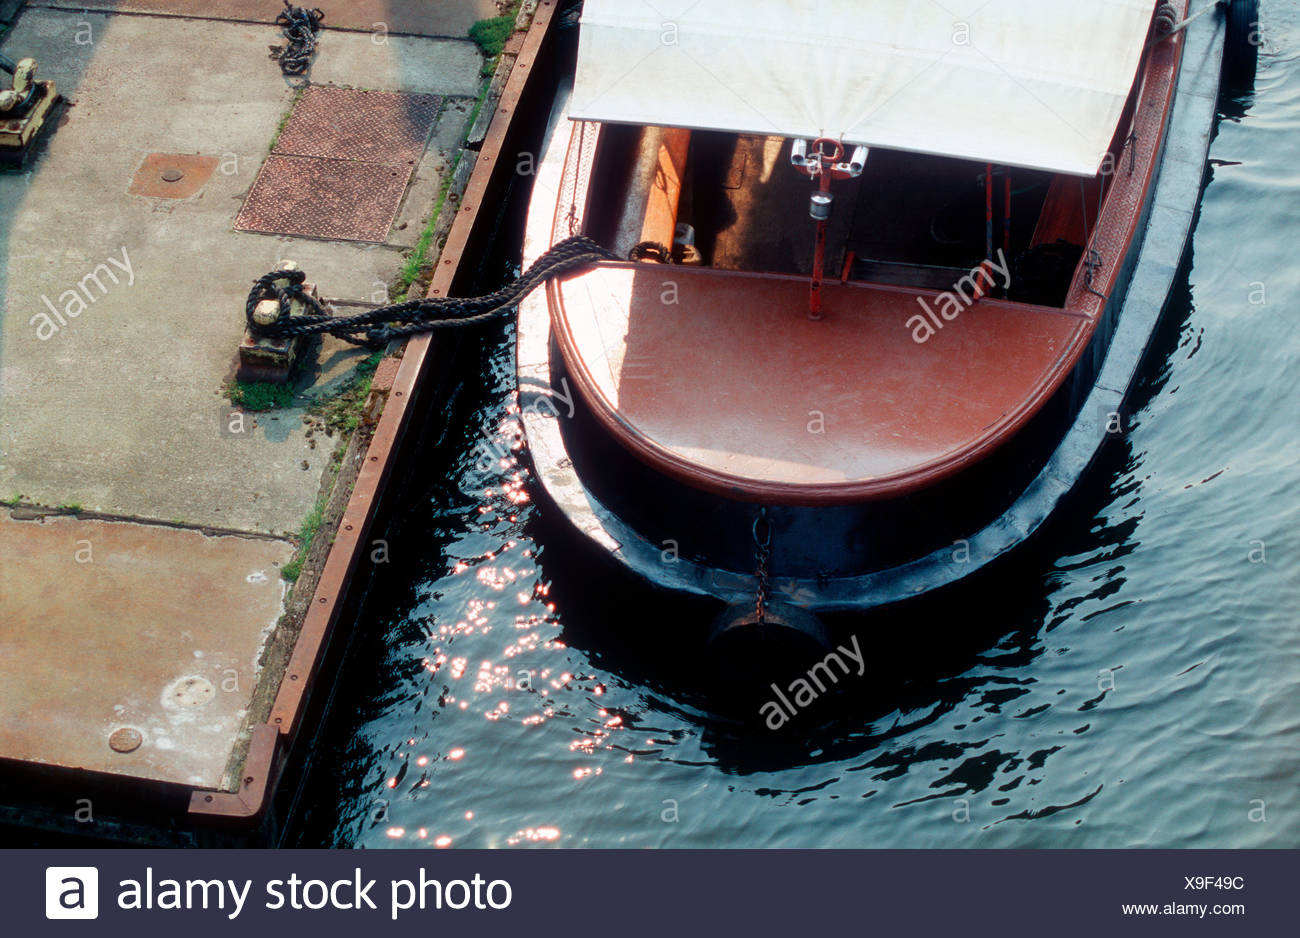 Moored boat - Stock Image